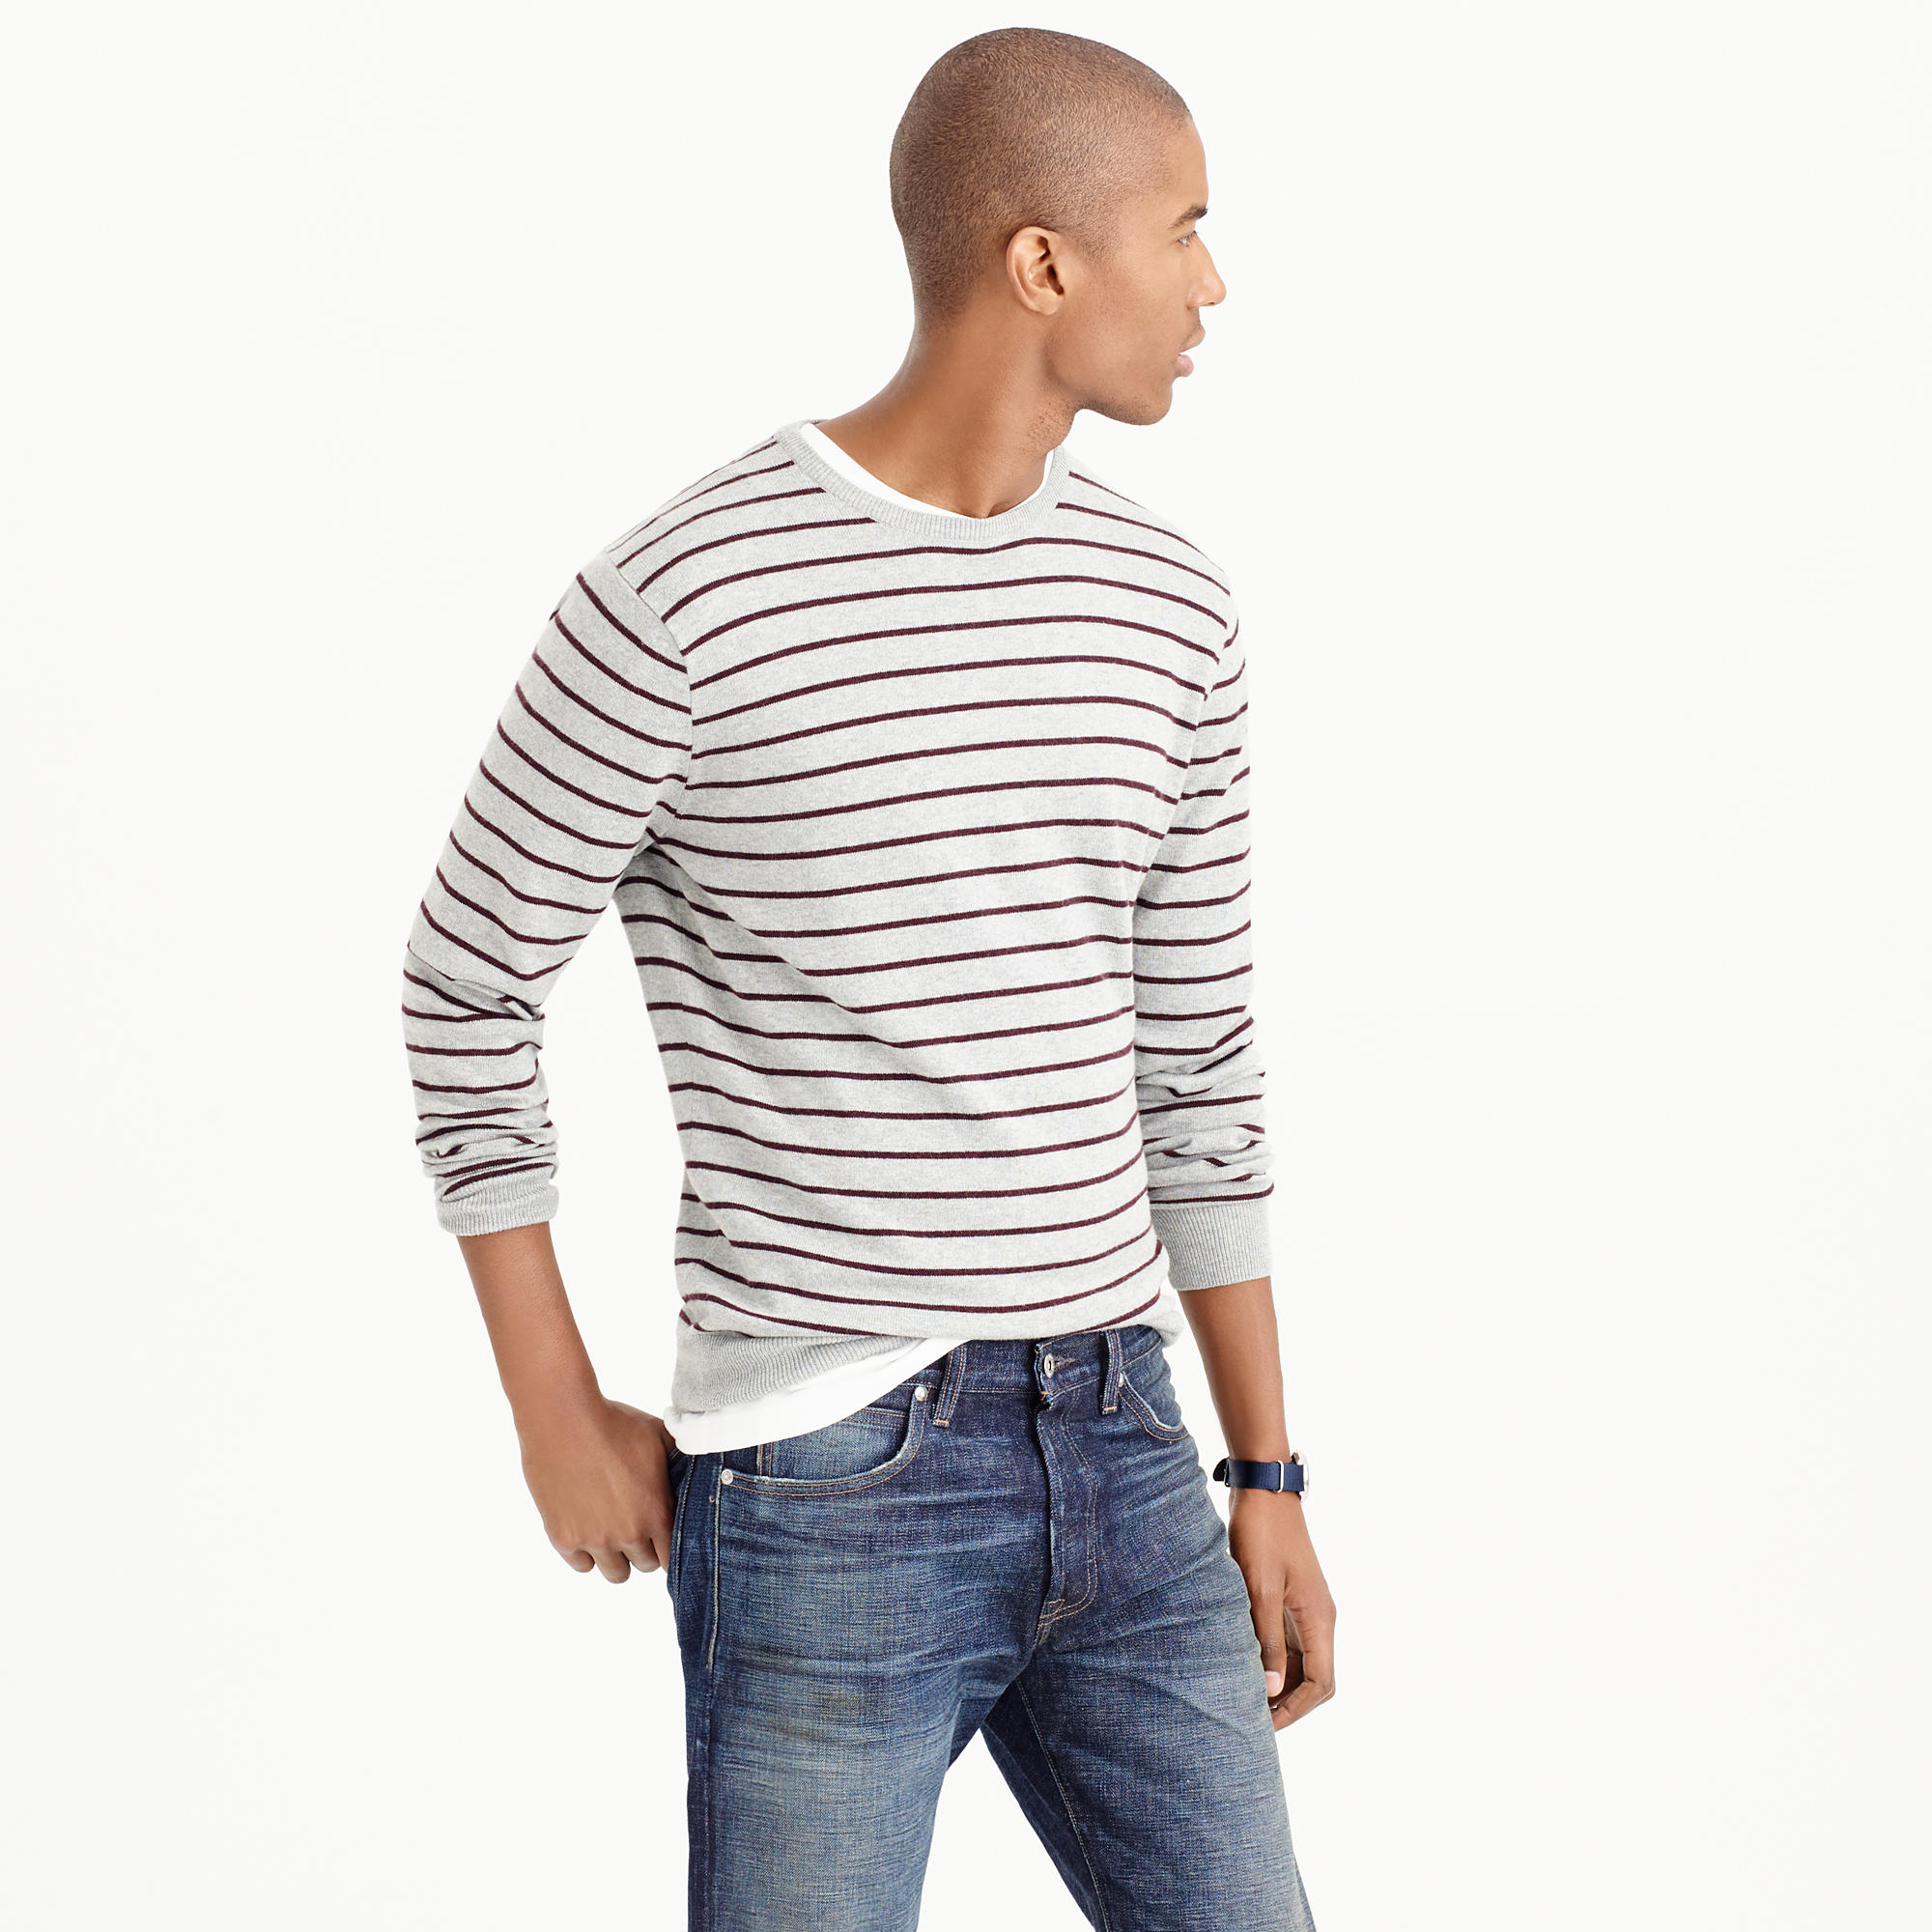 J.crew Cotton-cashmere Sweater In Heather Fine Stripe in Natural ...